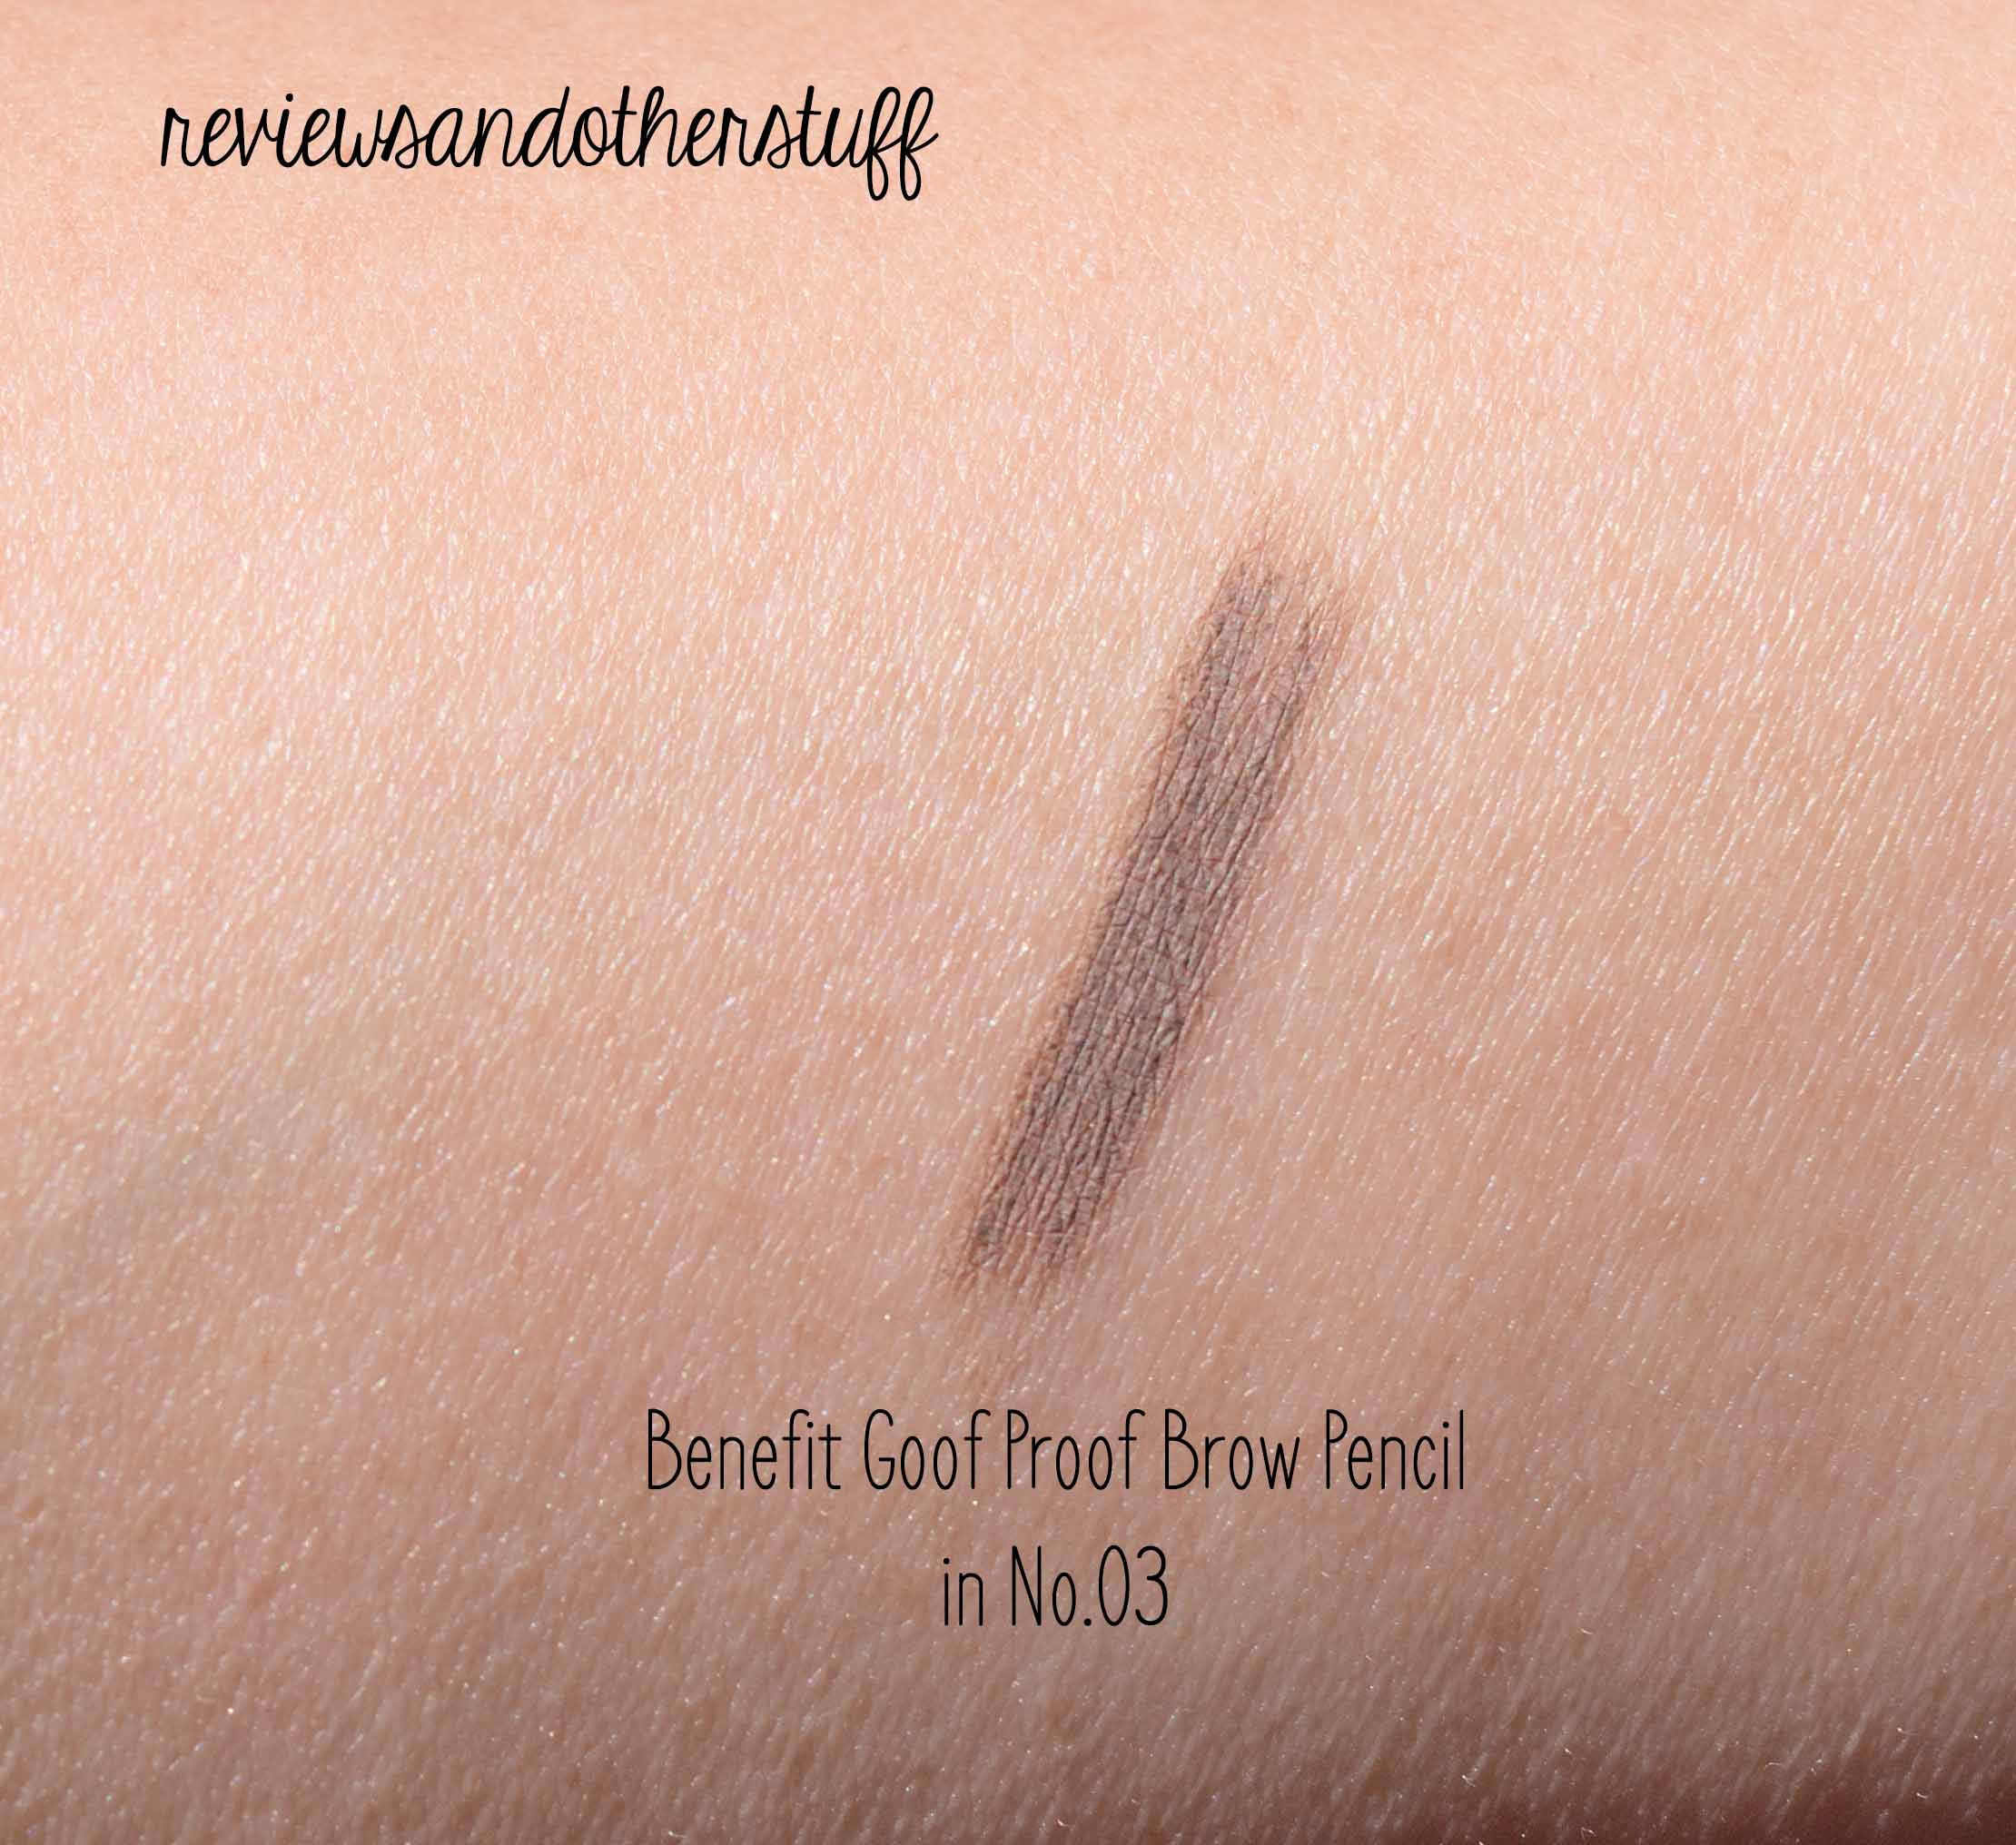 Goof Proof Brow Pencil by Benefit #3